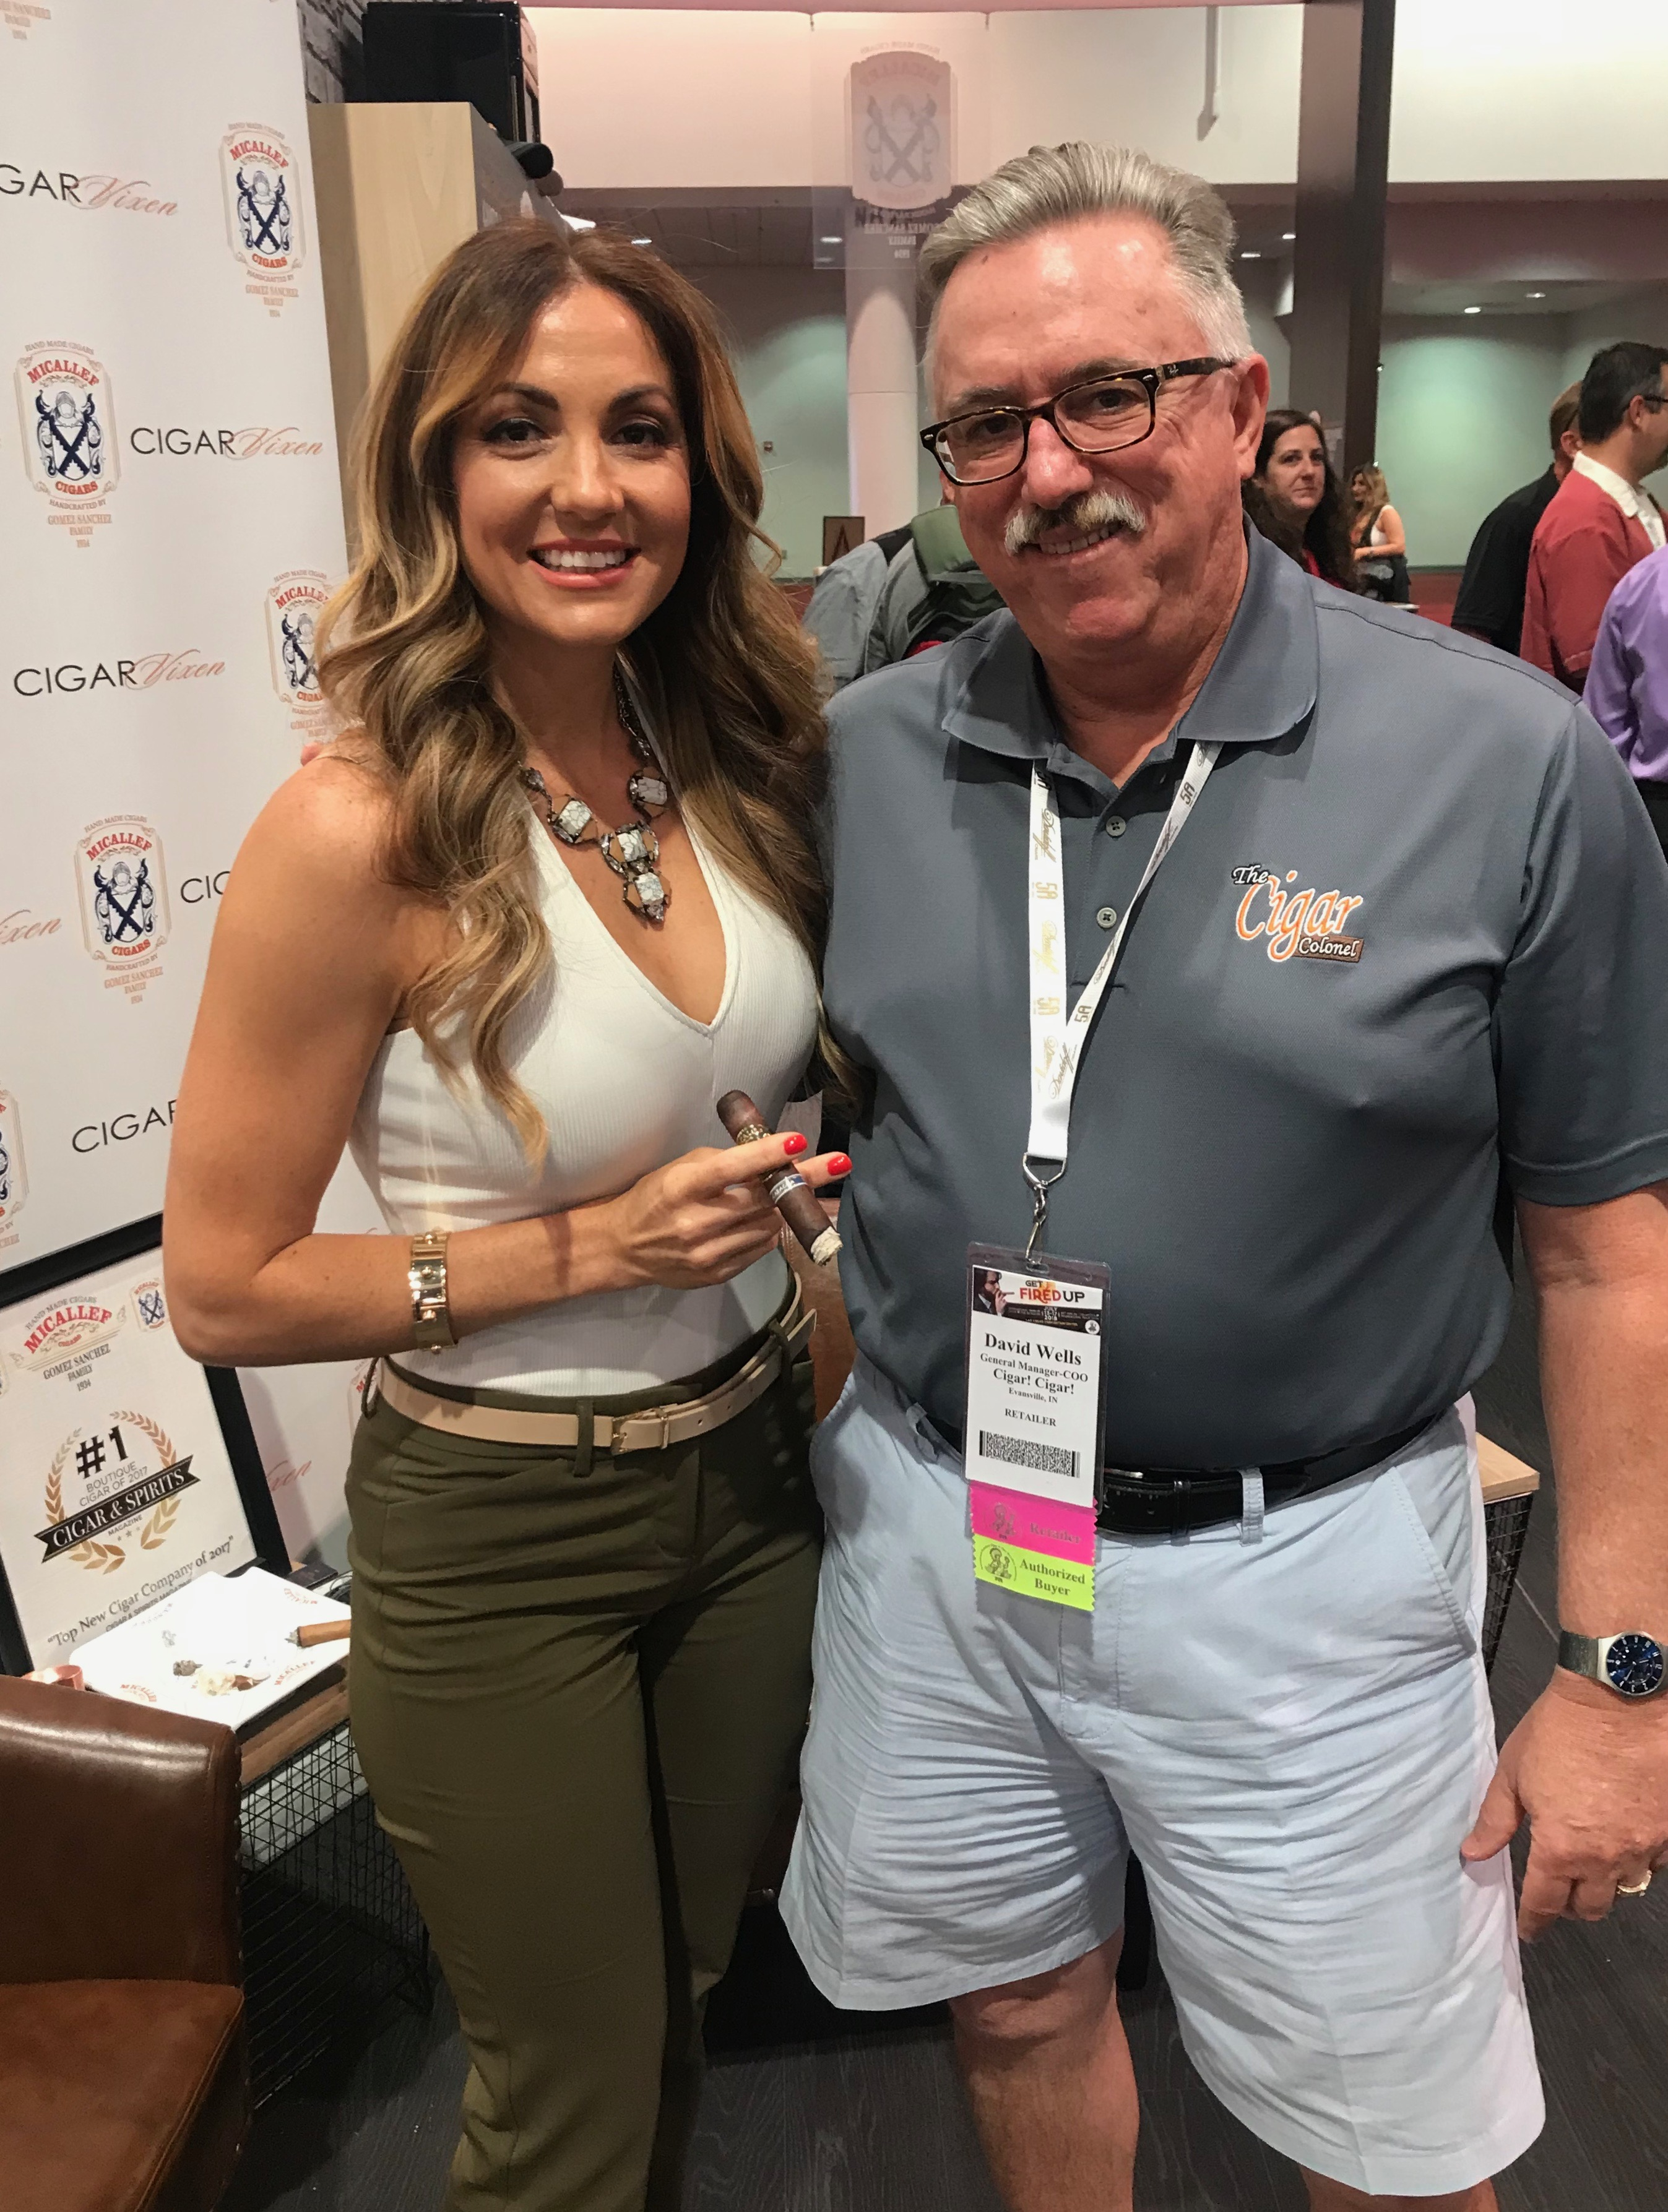 The Colonel with Cigar Vixen